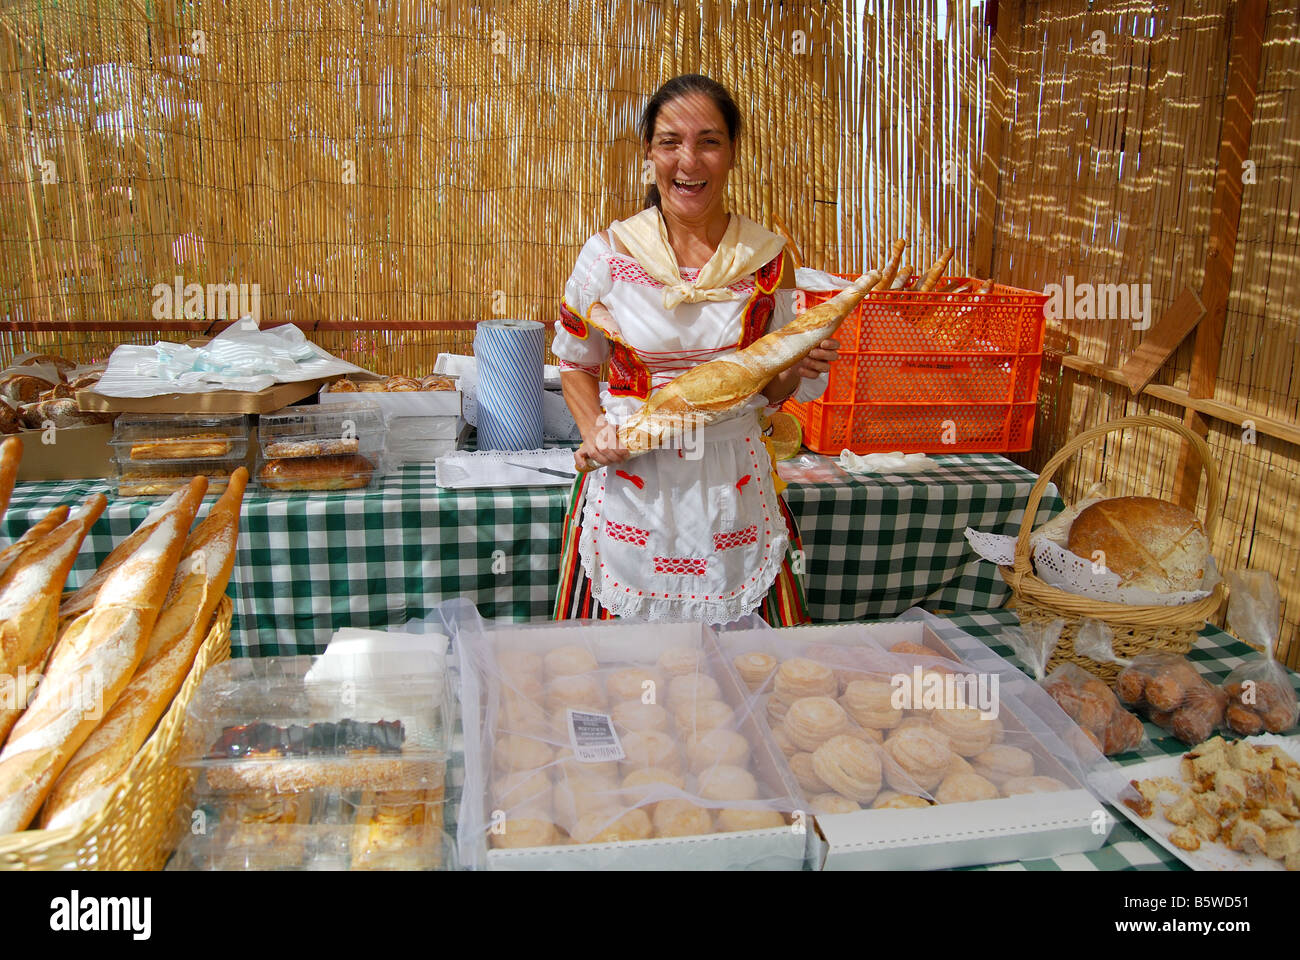 Bread Of The Canary Islands Stock Photos & Bread Of The